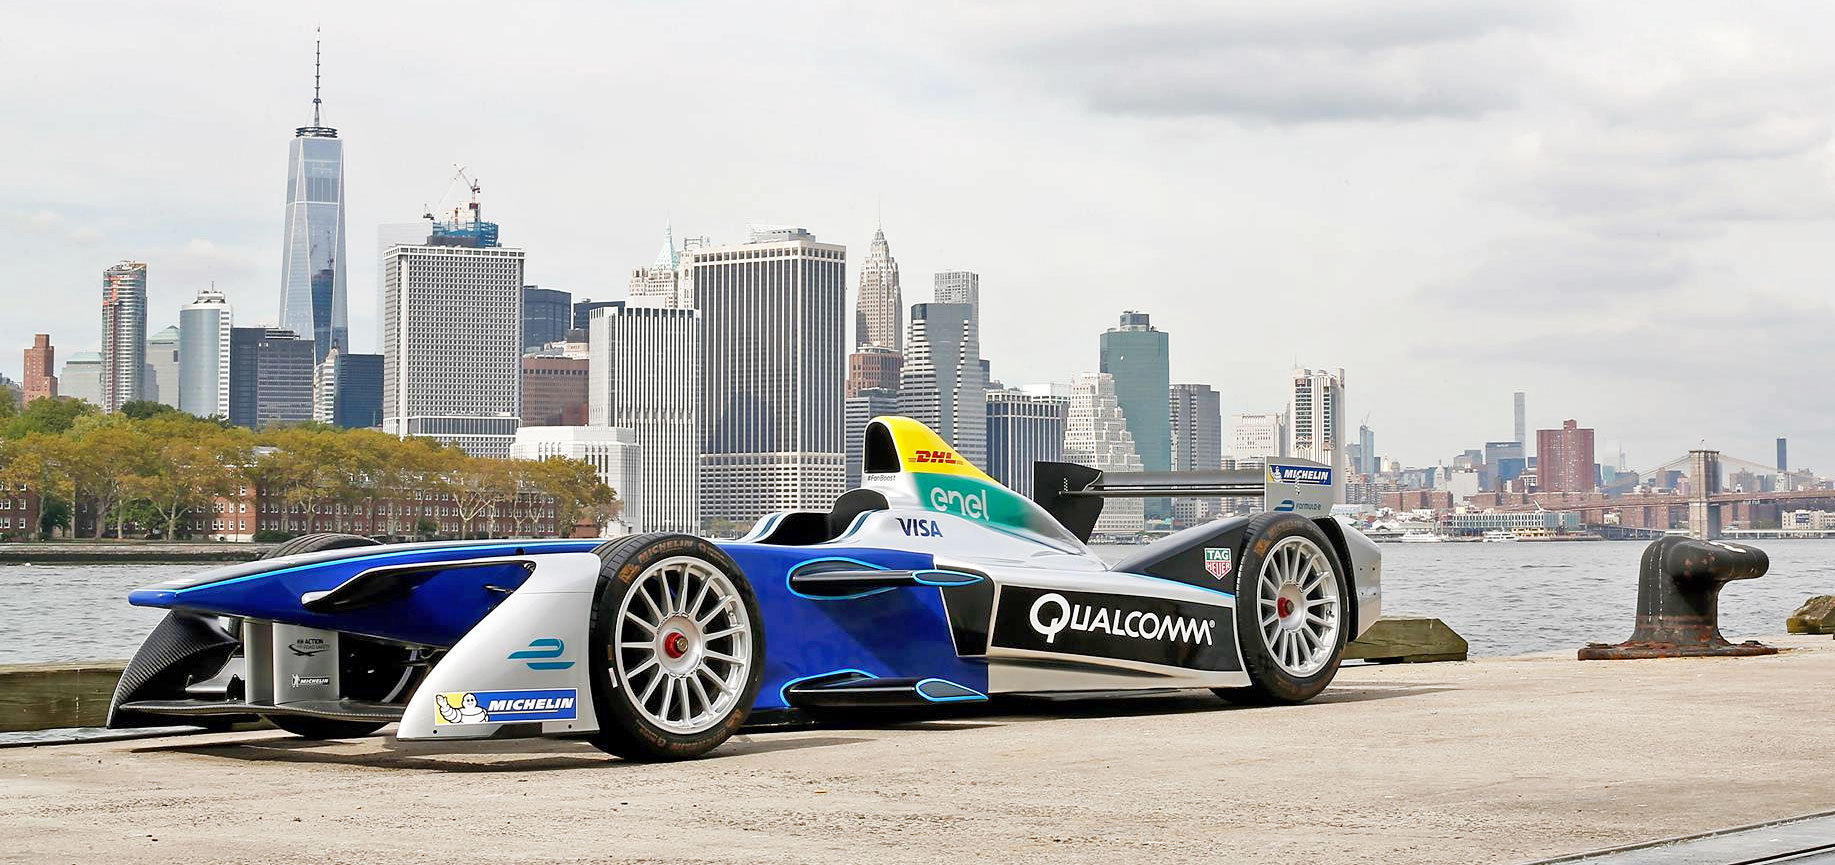 ePrix electric vehicle race coming to Brooklyn next summer